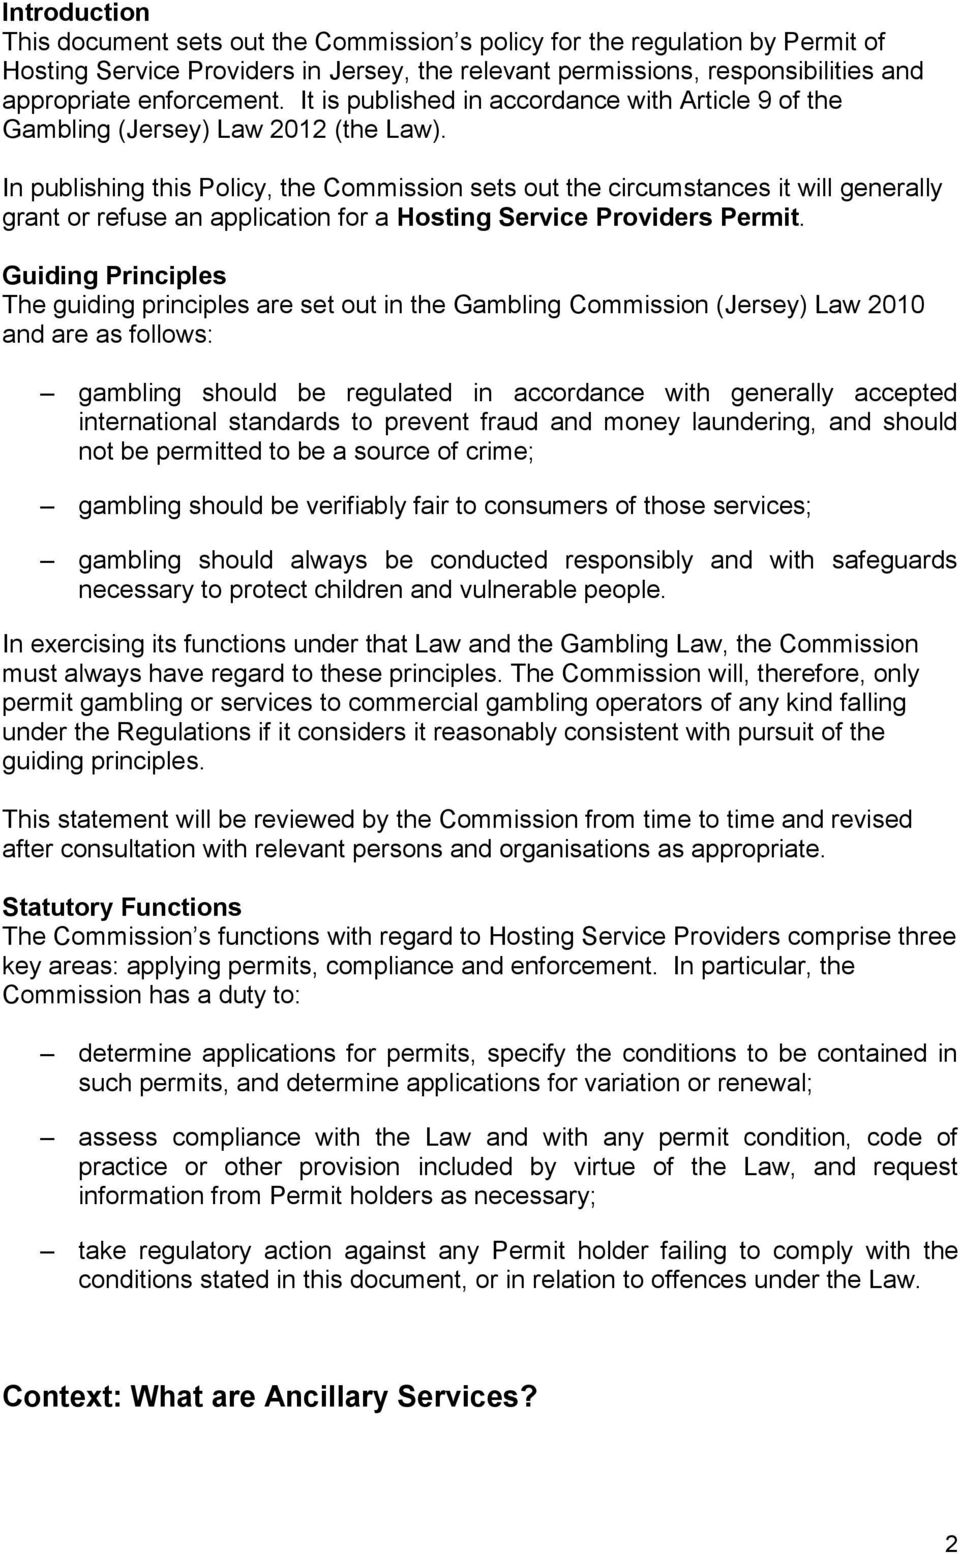 In publishing this Policy, the Commission sets out the circumstances it will generally grant or refuse an application for a Hosting Service Providers Permit.